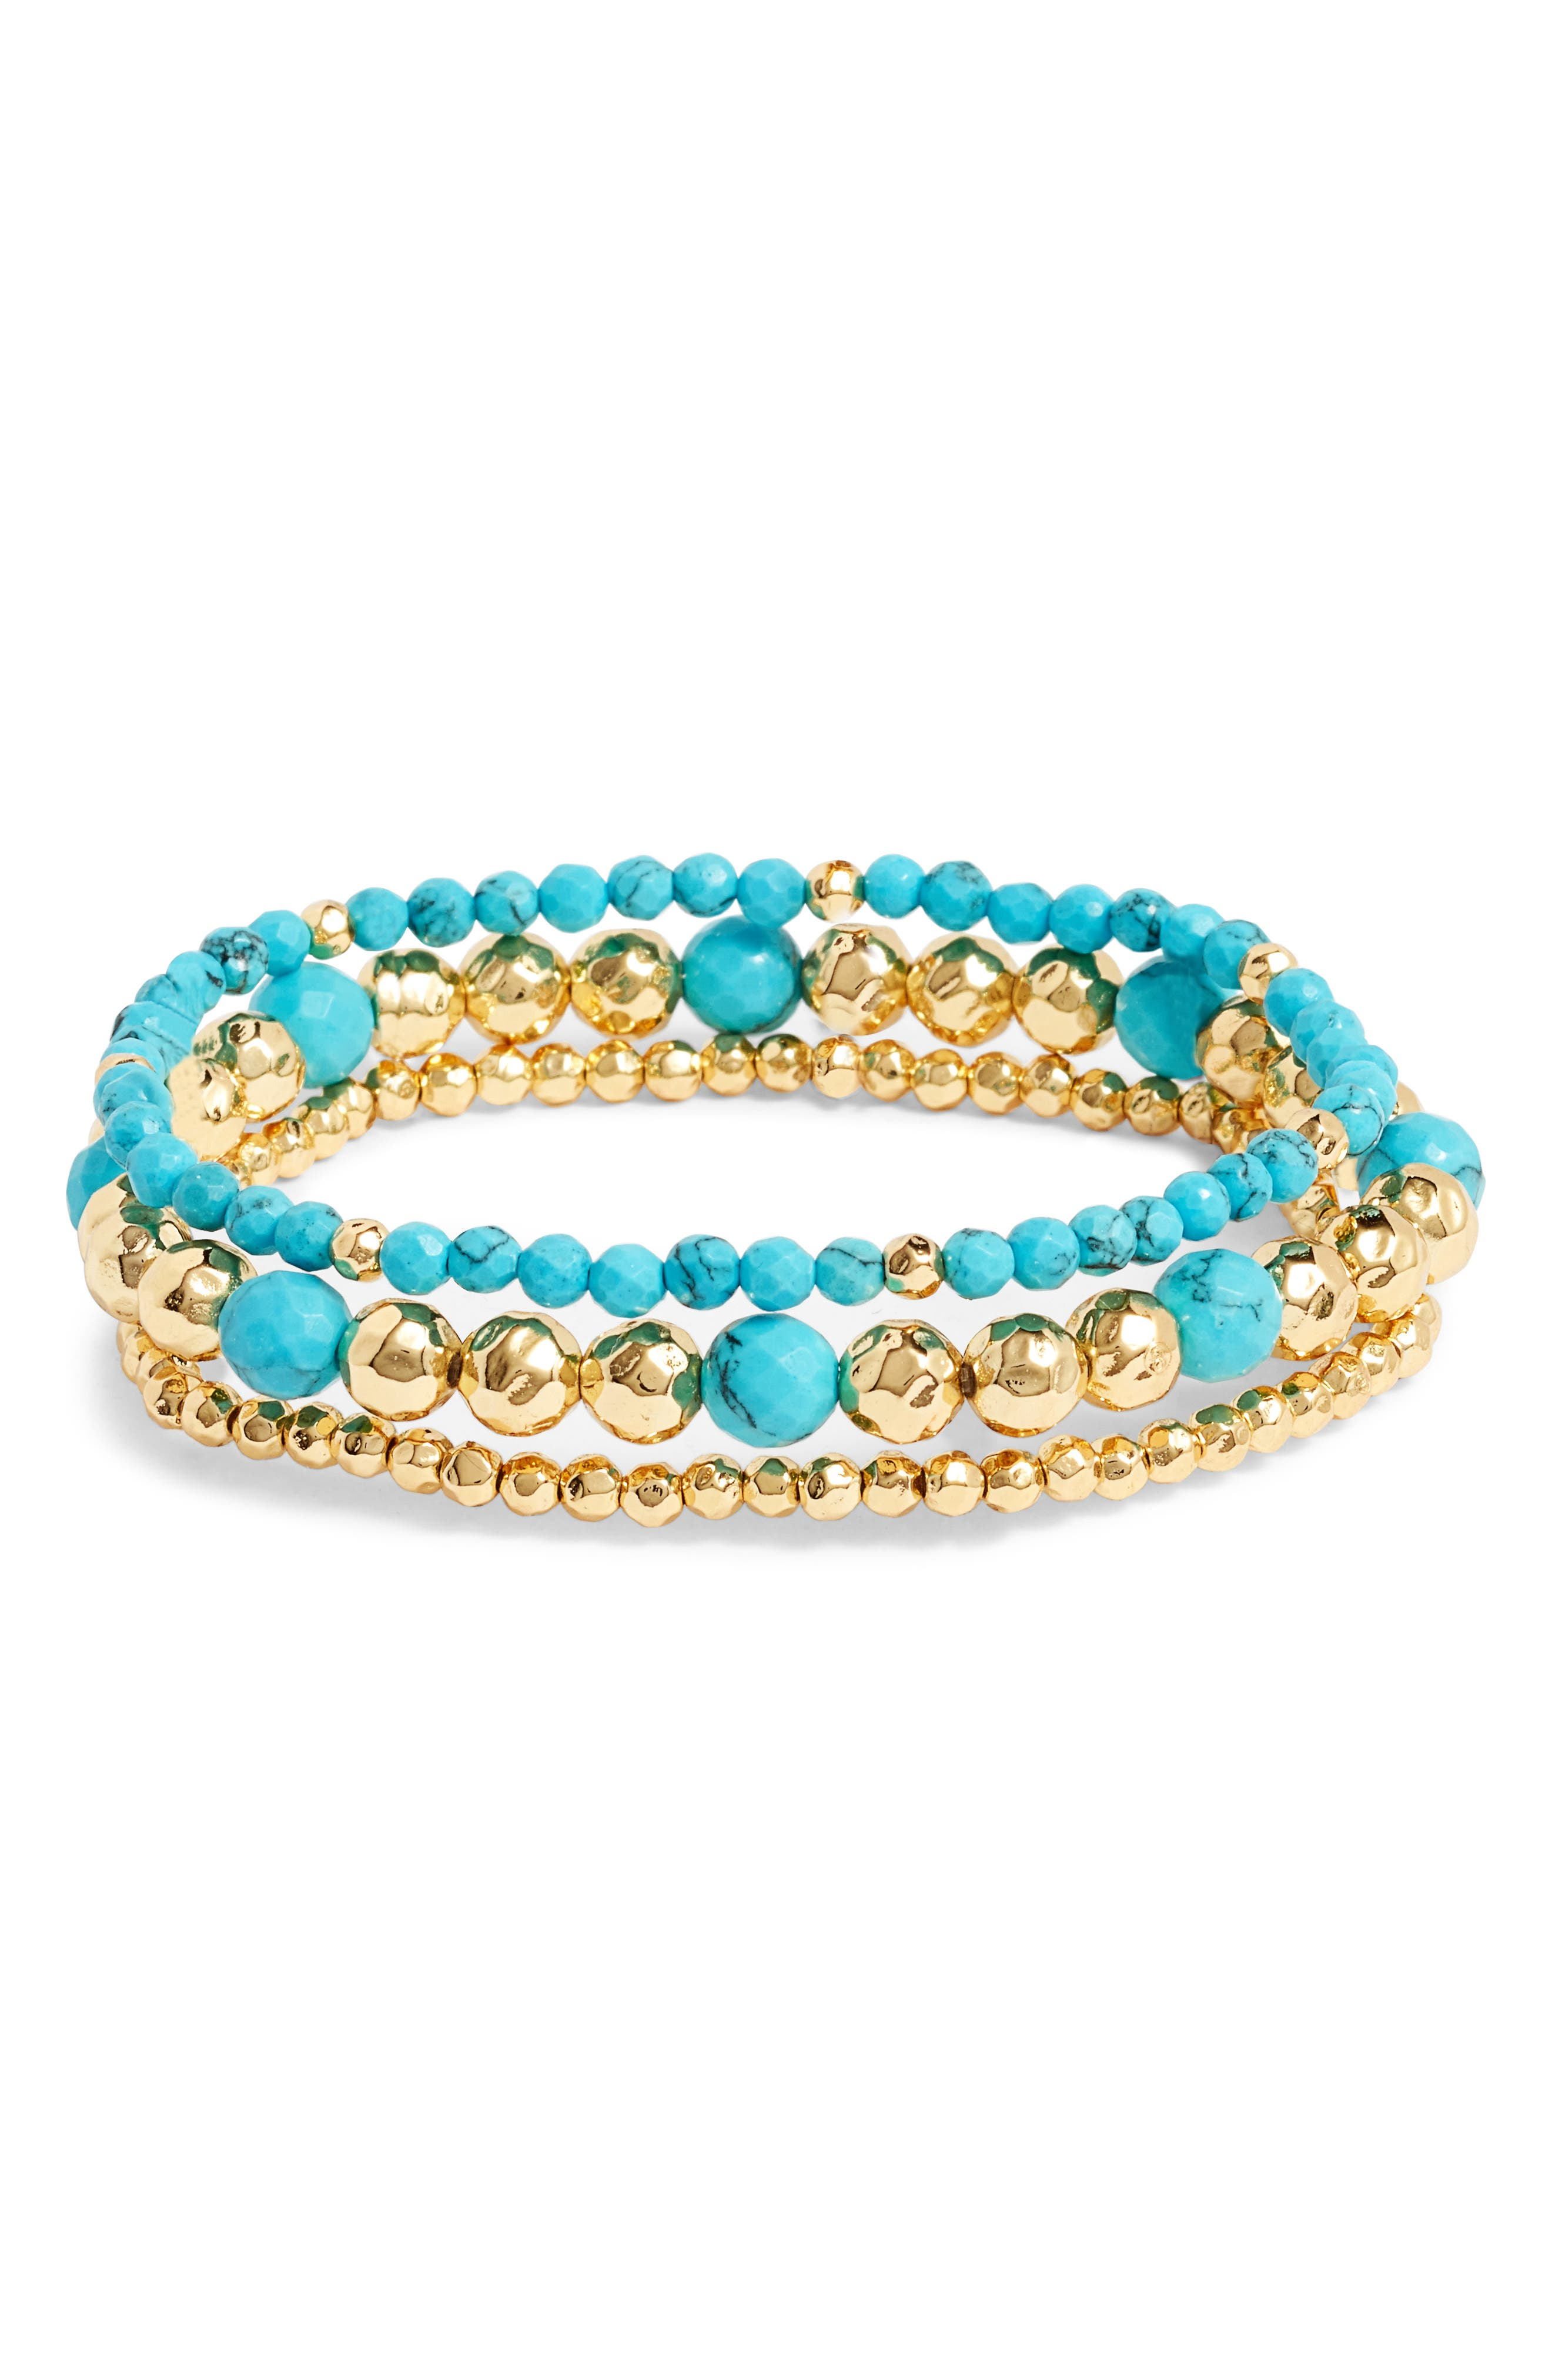 Gypset Set of 3 Bracelets,                             Main thumbnail 1, color,                             Turquoise/ Gold